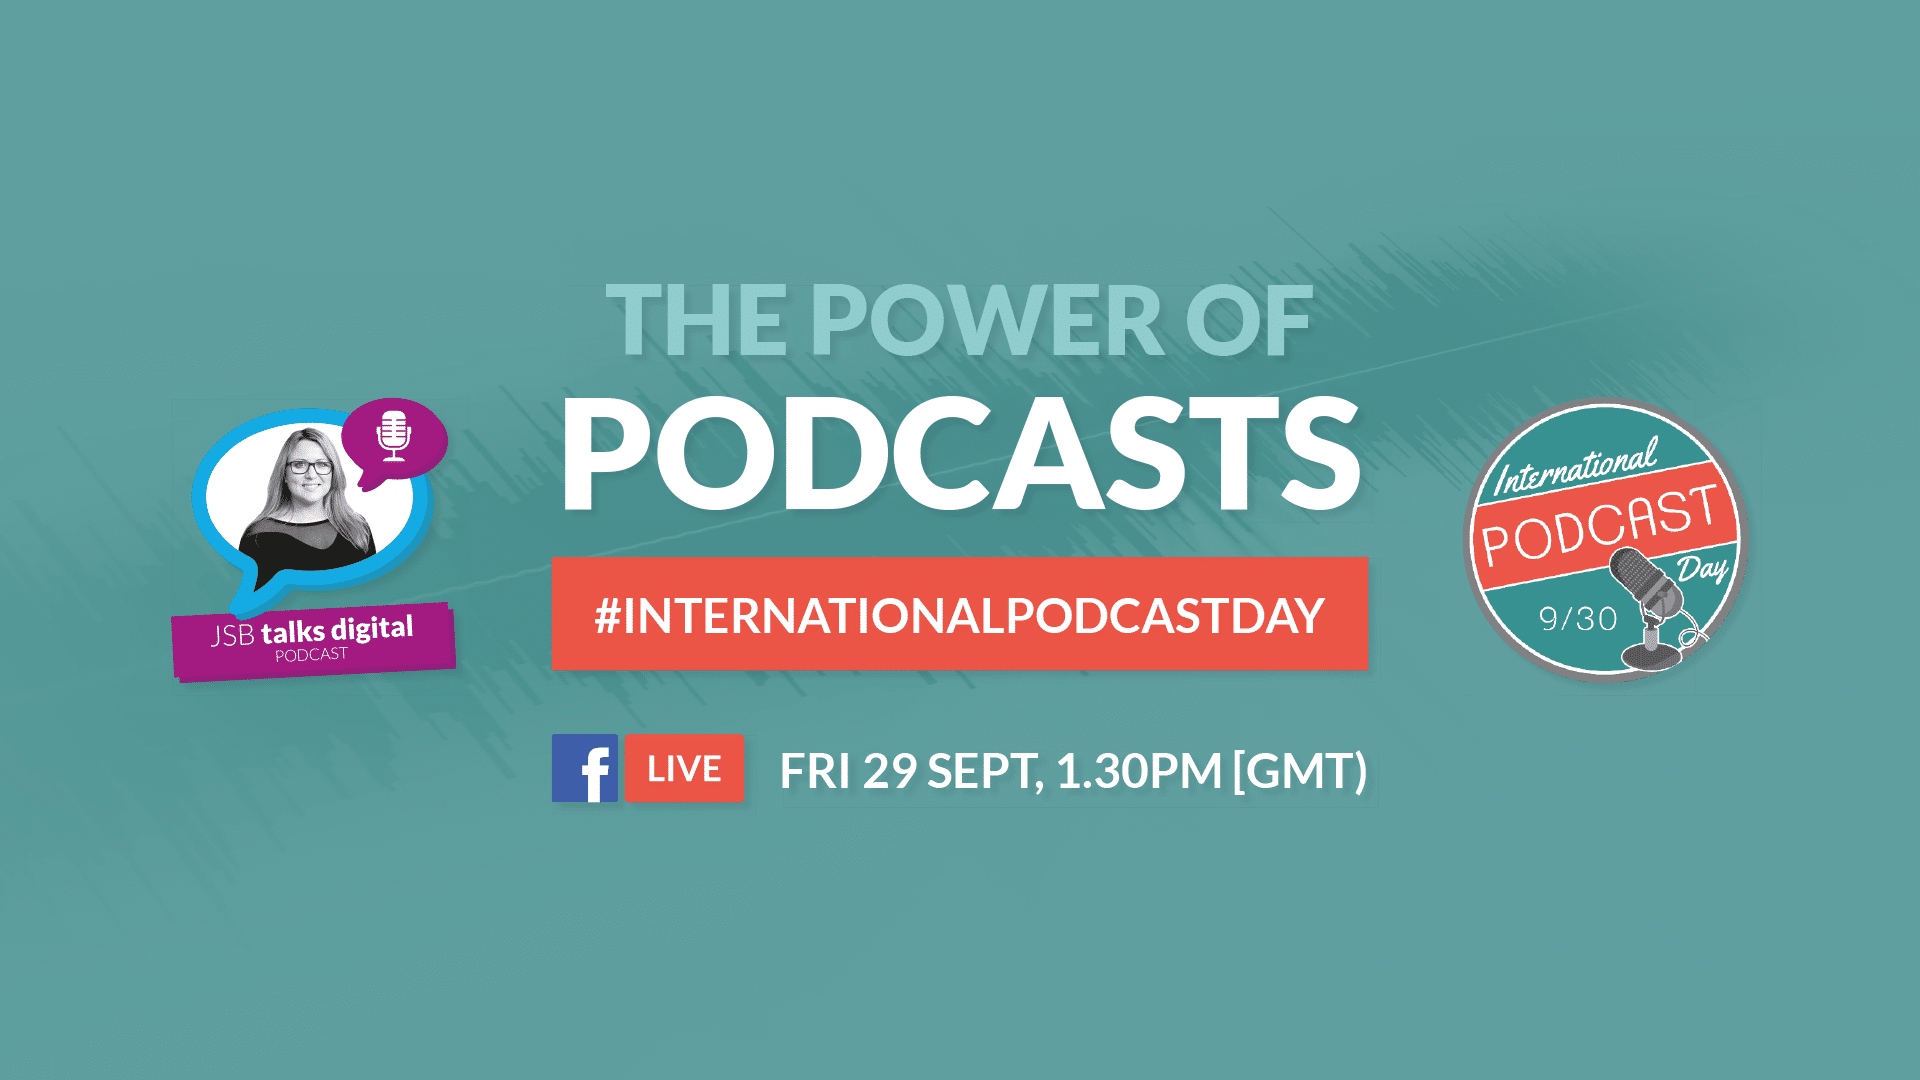 JSB Talks Digital celebrates International Podcast Day